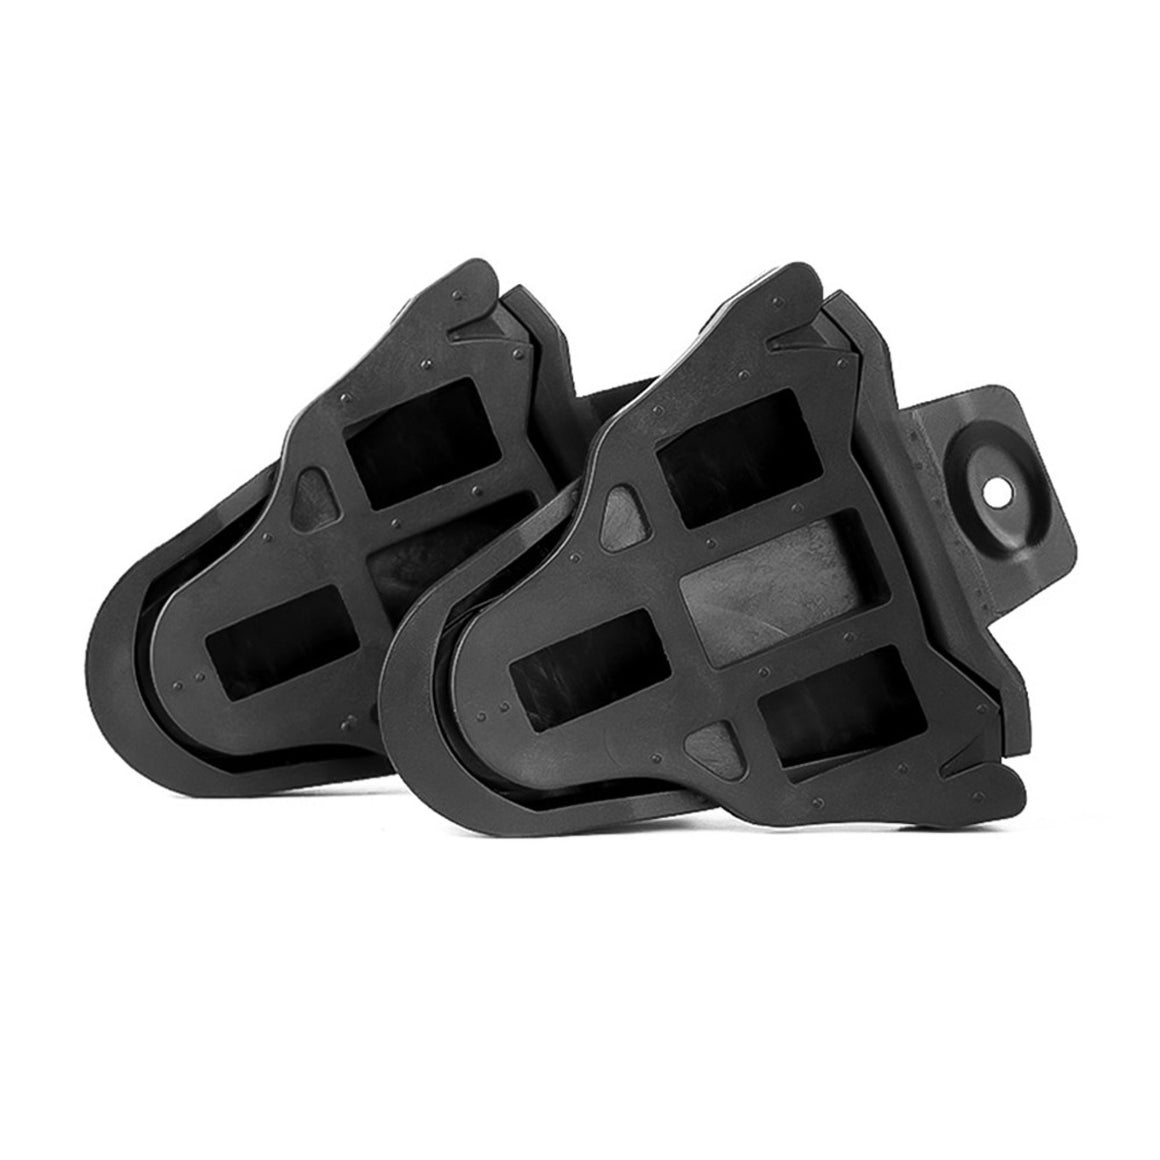 One Pair Quick Release Rubber Cleat Cover Bike Pedal Cleats Covers for Shimano SPD-SL Cleats